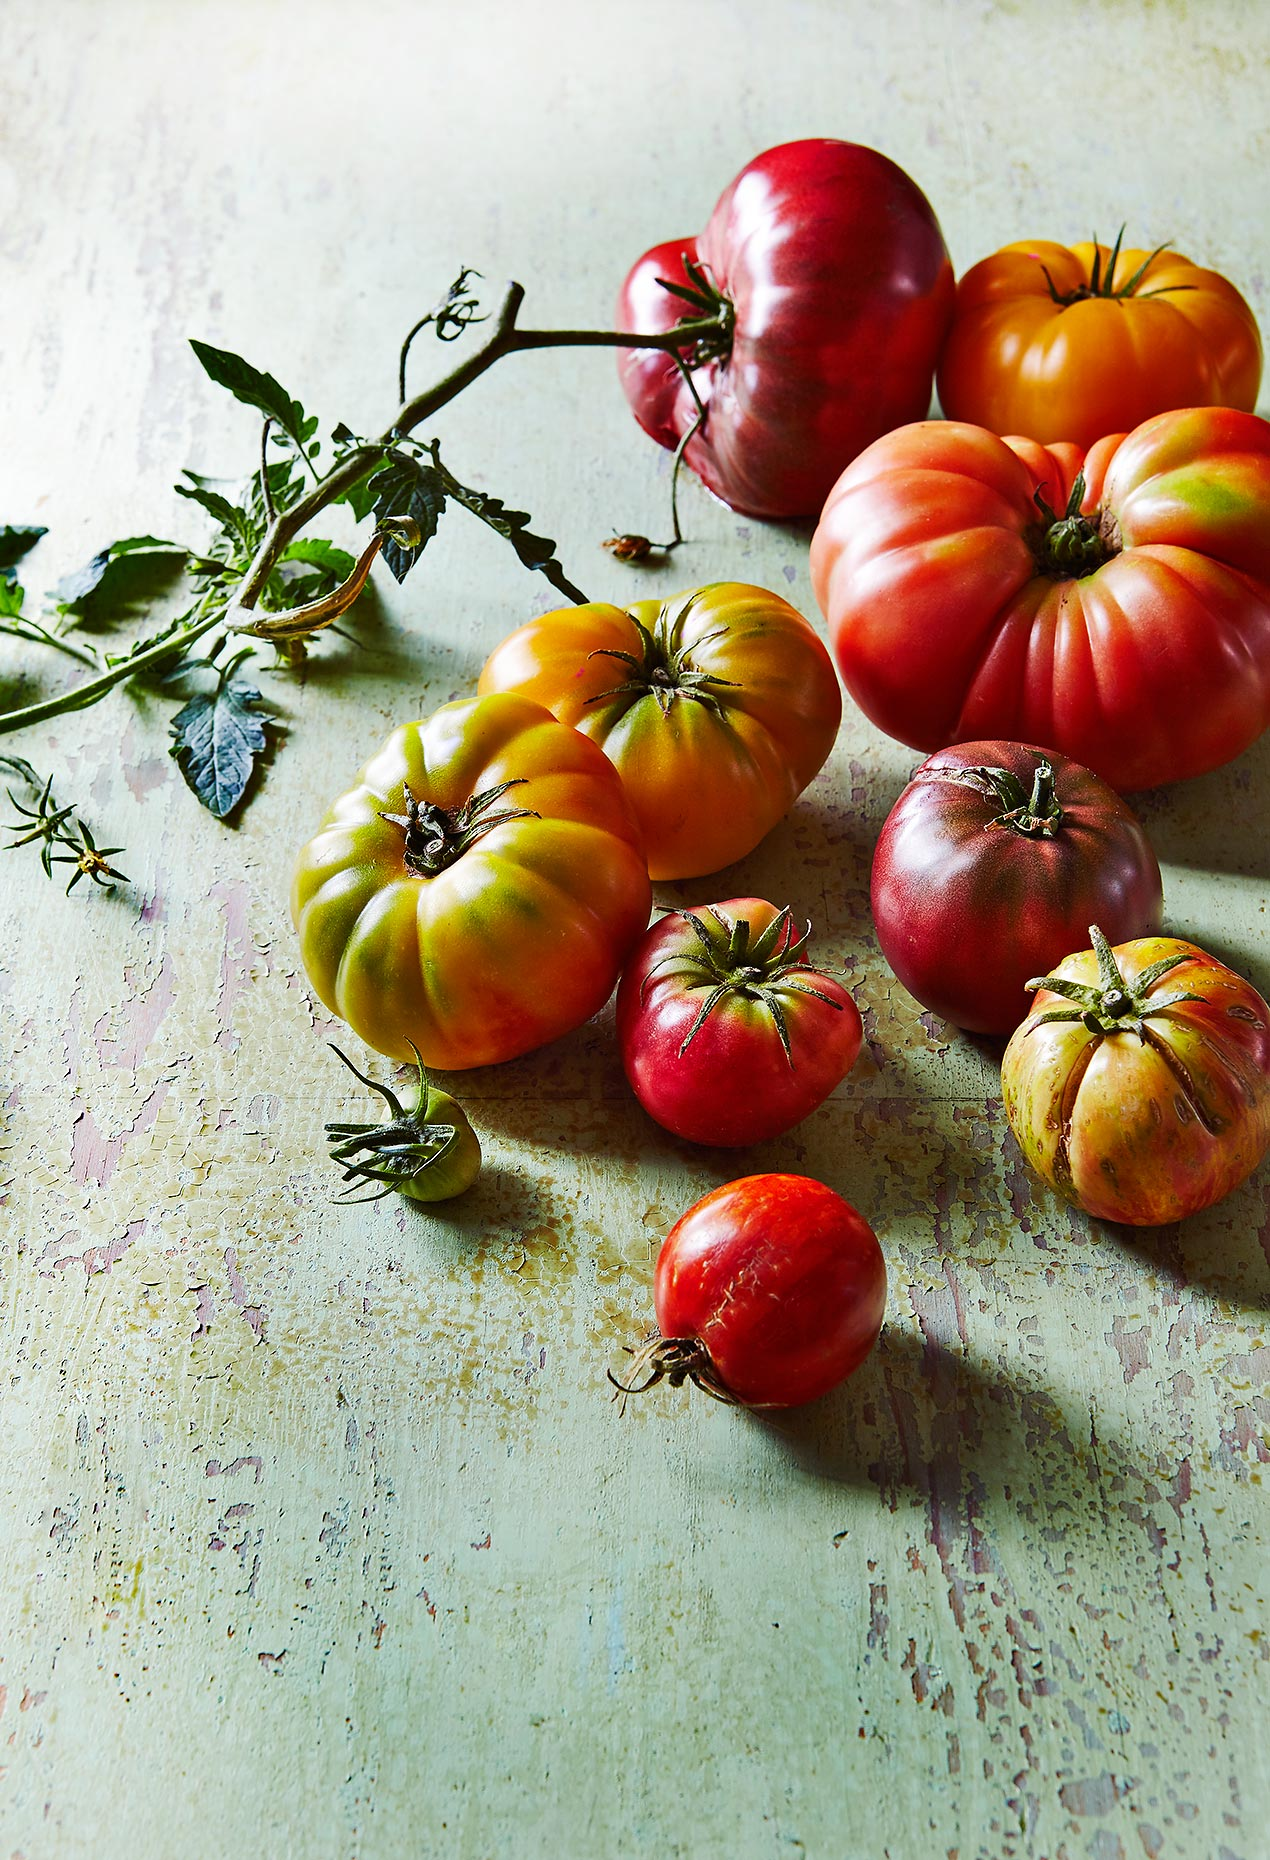 Tomatoes_8_2017_3021_Master